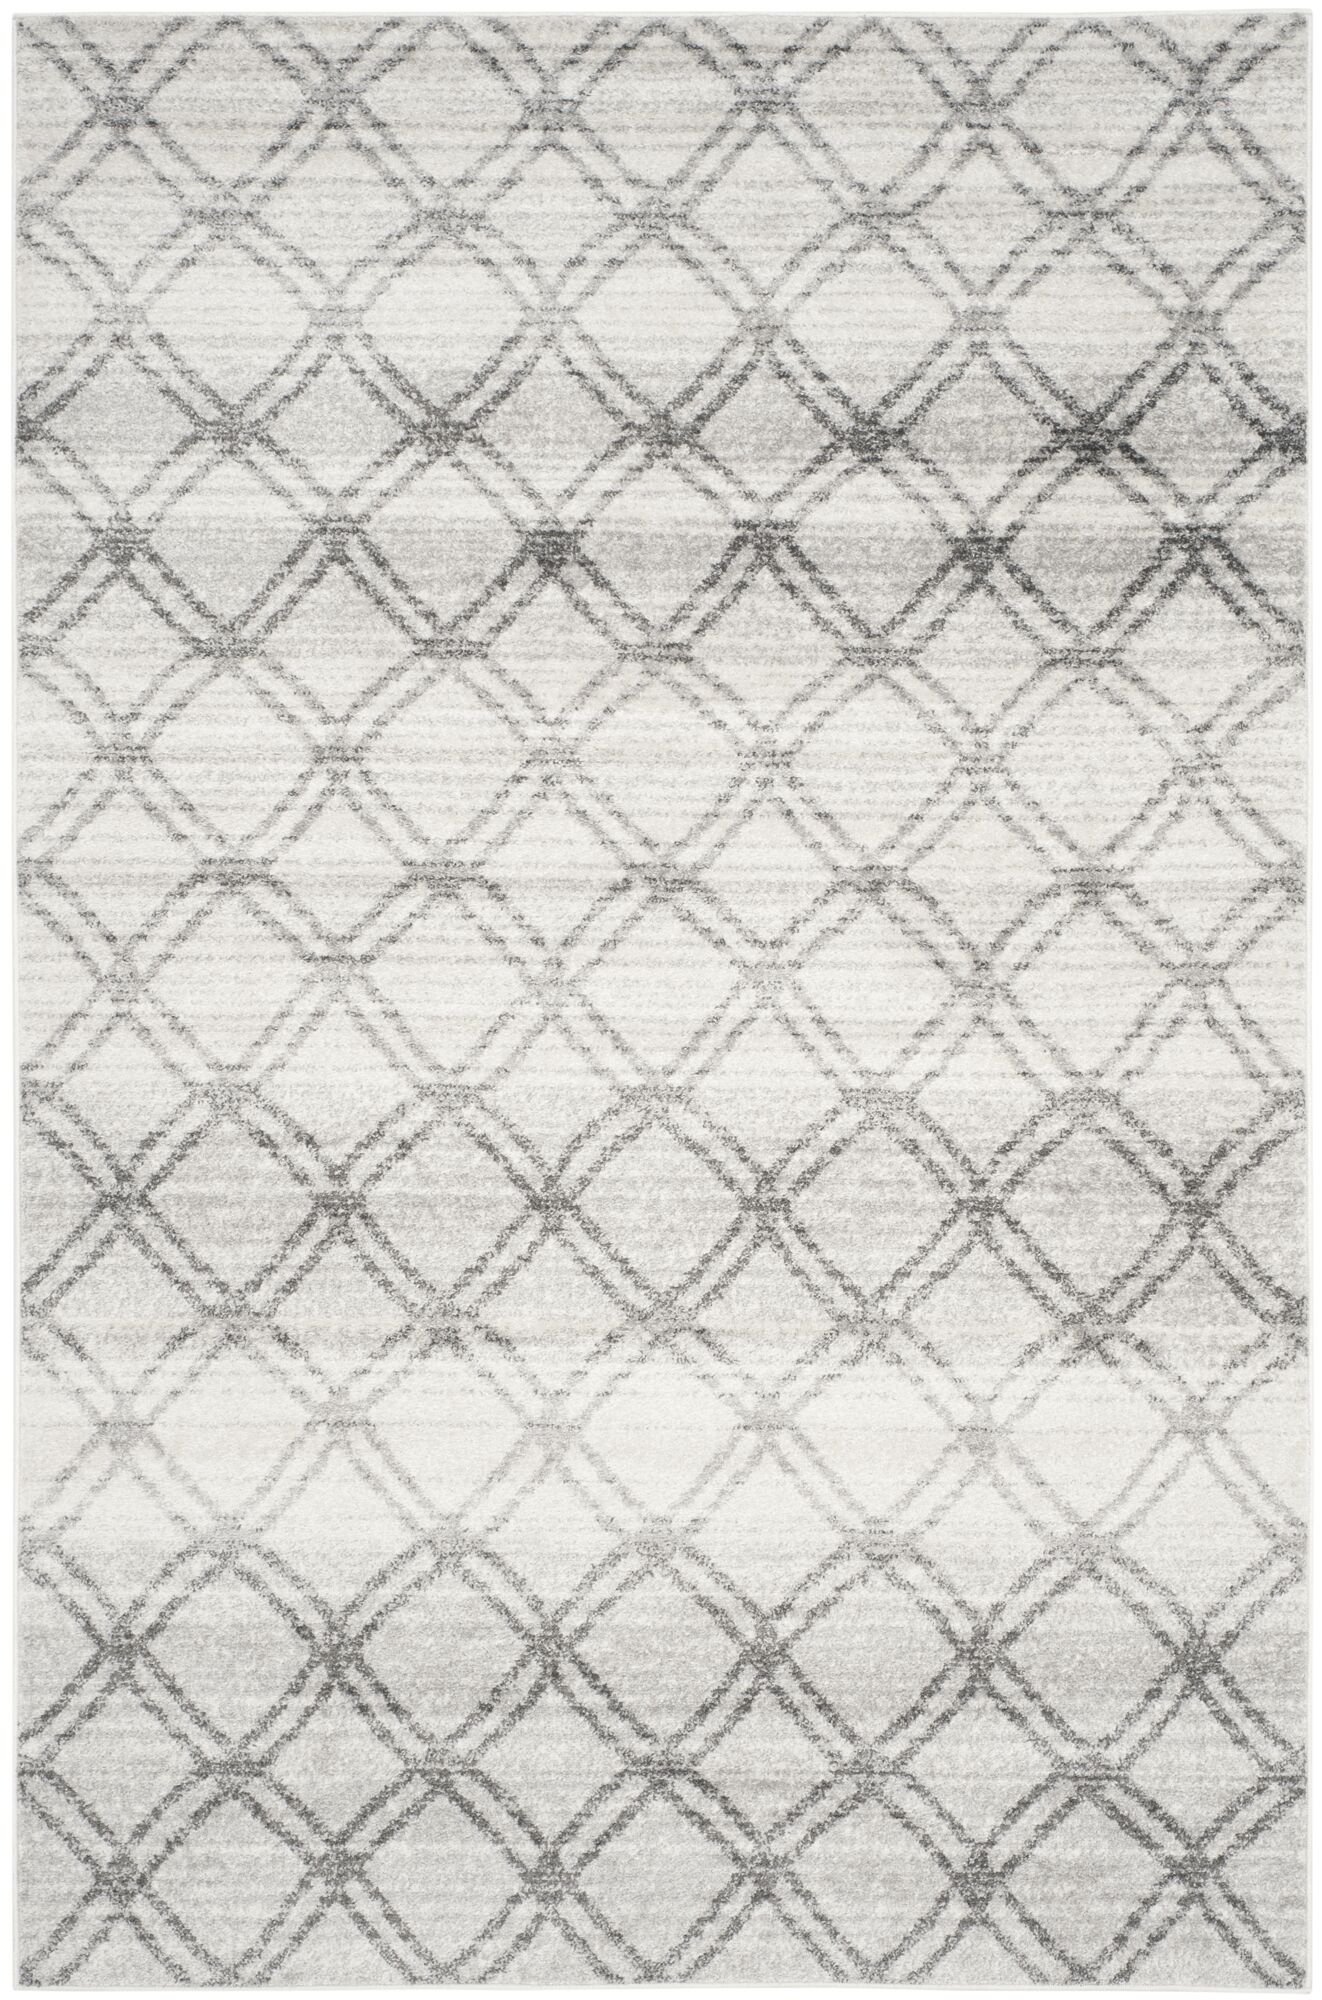 Neuman Silver/Charcoal Area Rug Rug Size: Rectangle 6' x 9'